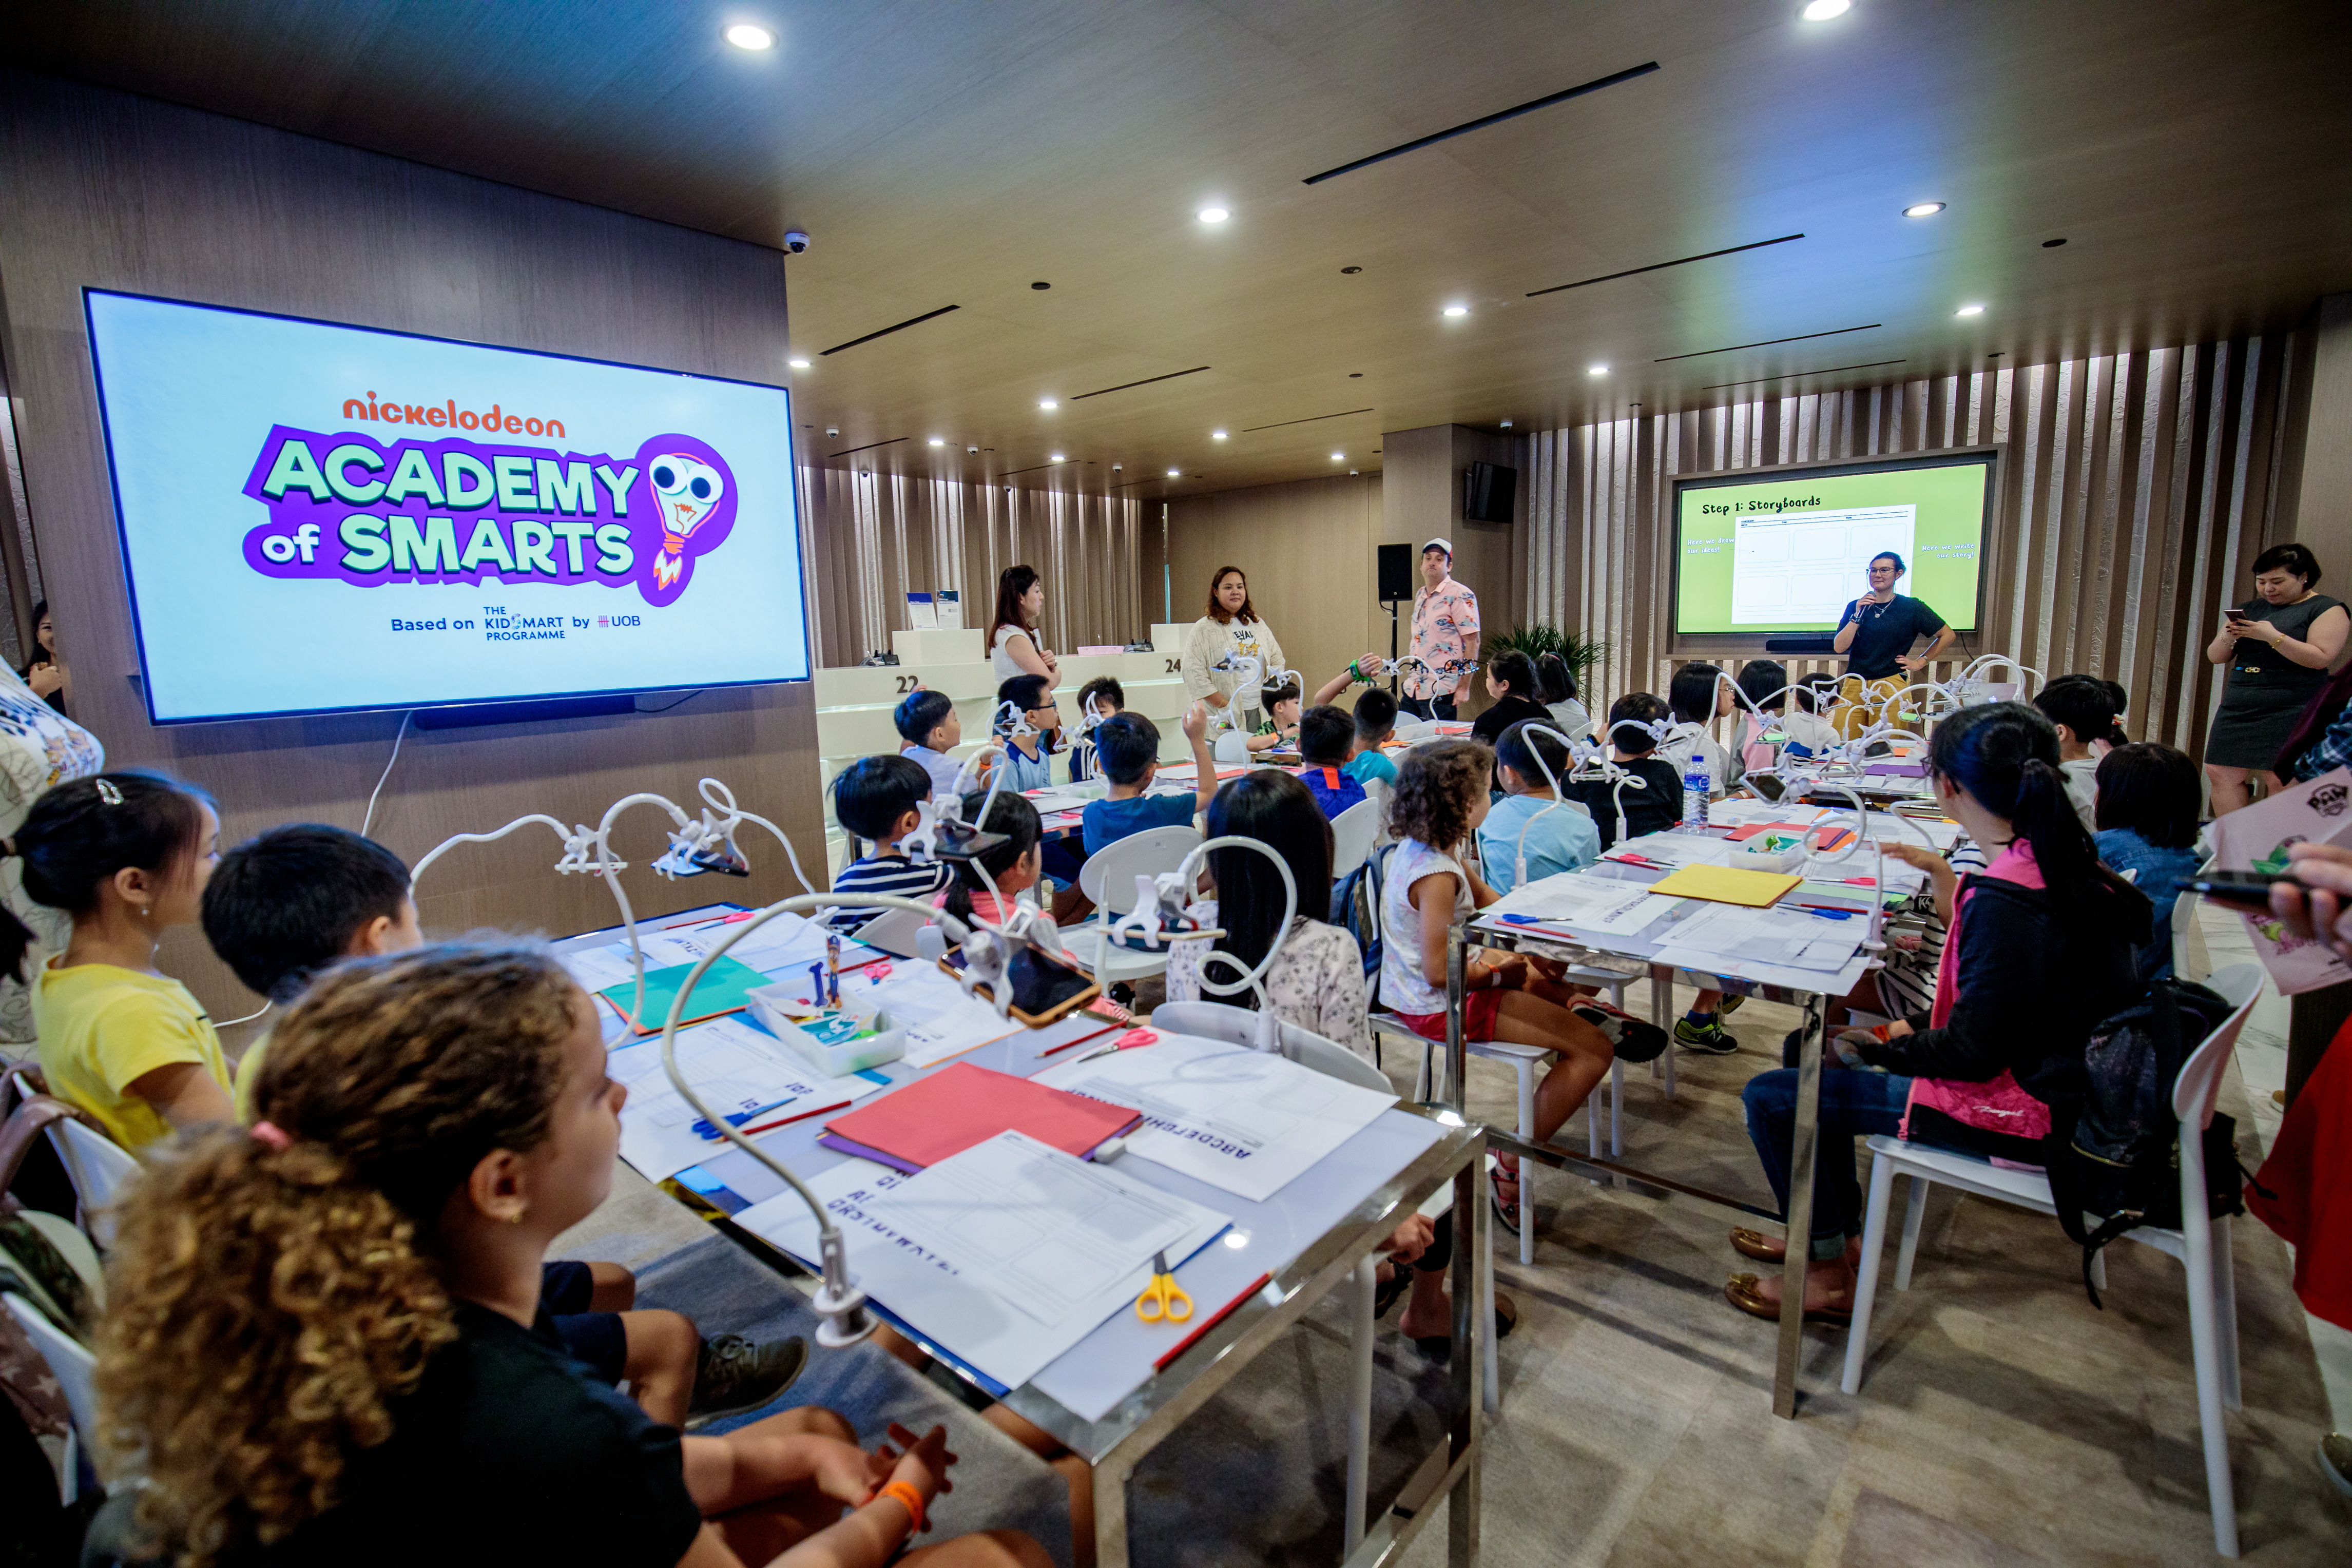 Stop motion animation masterclass conducted by @mojokoworld